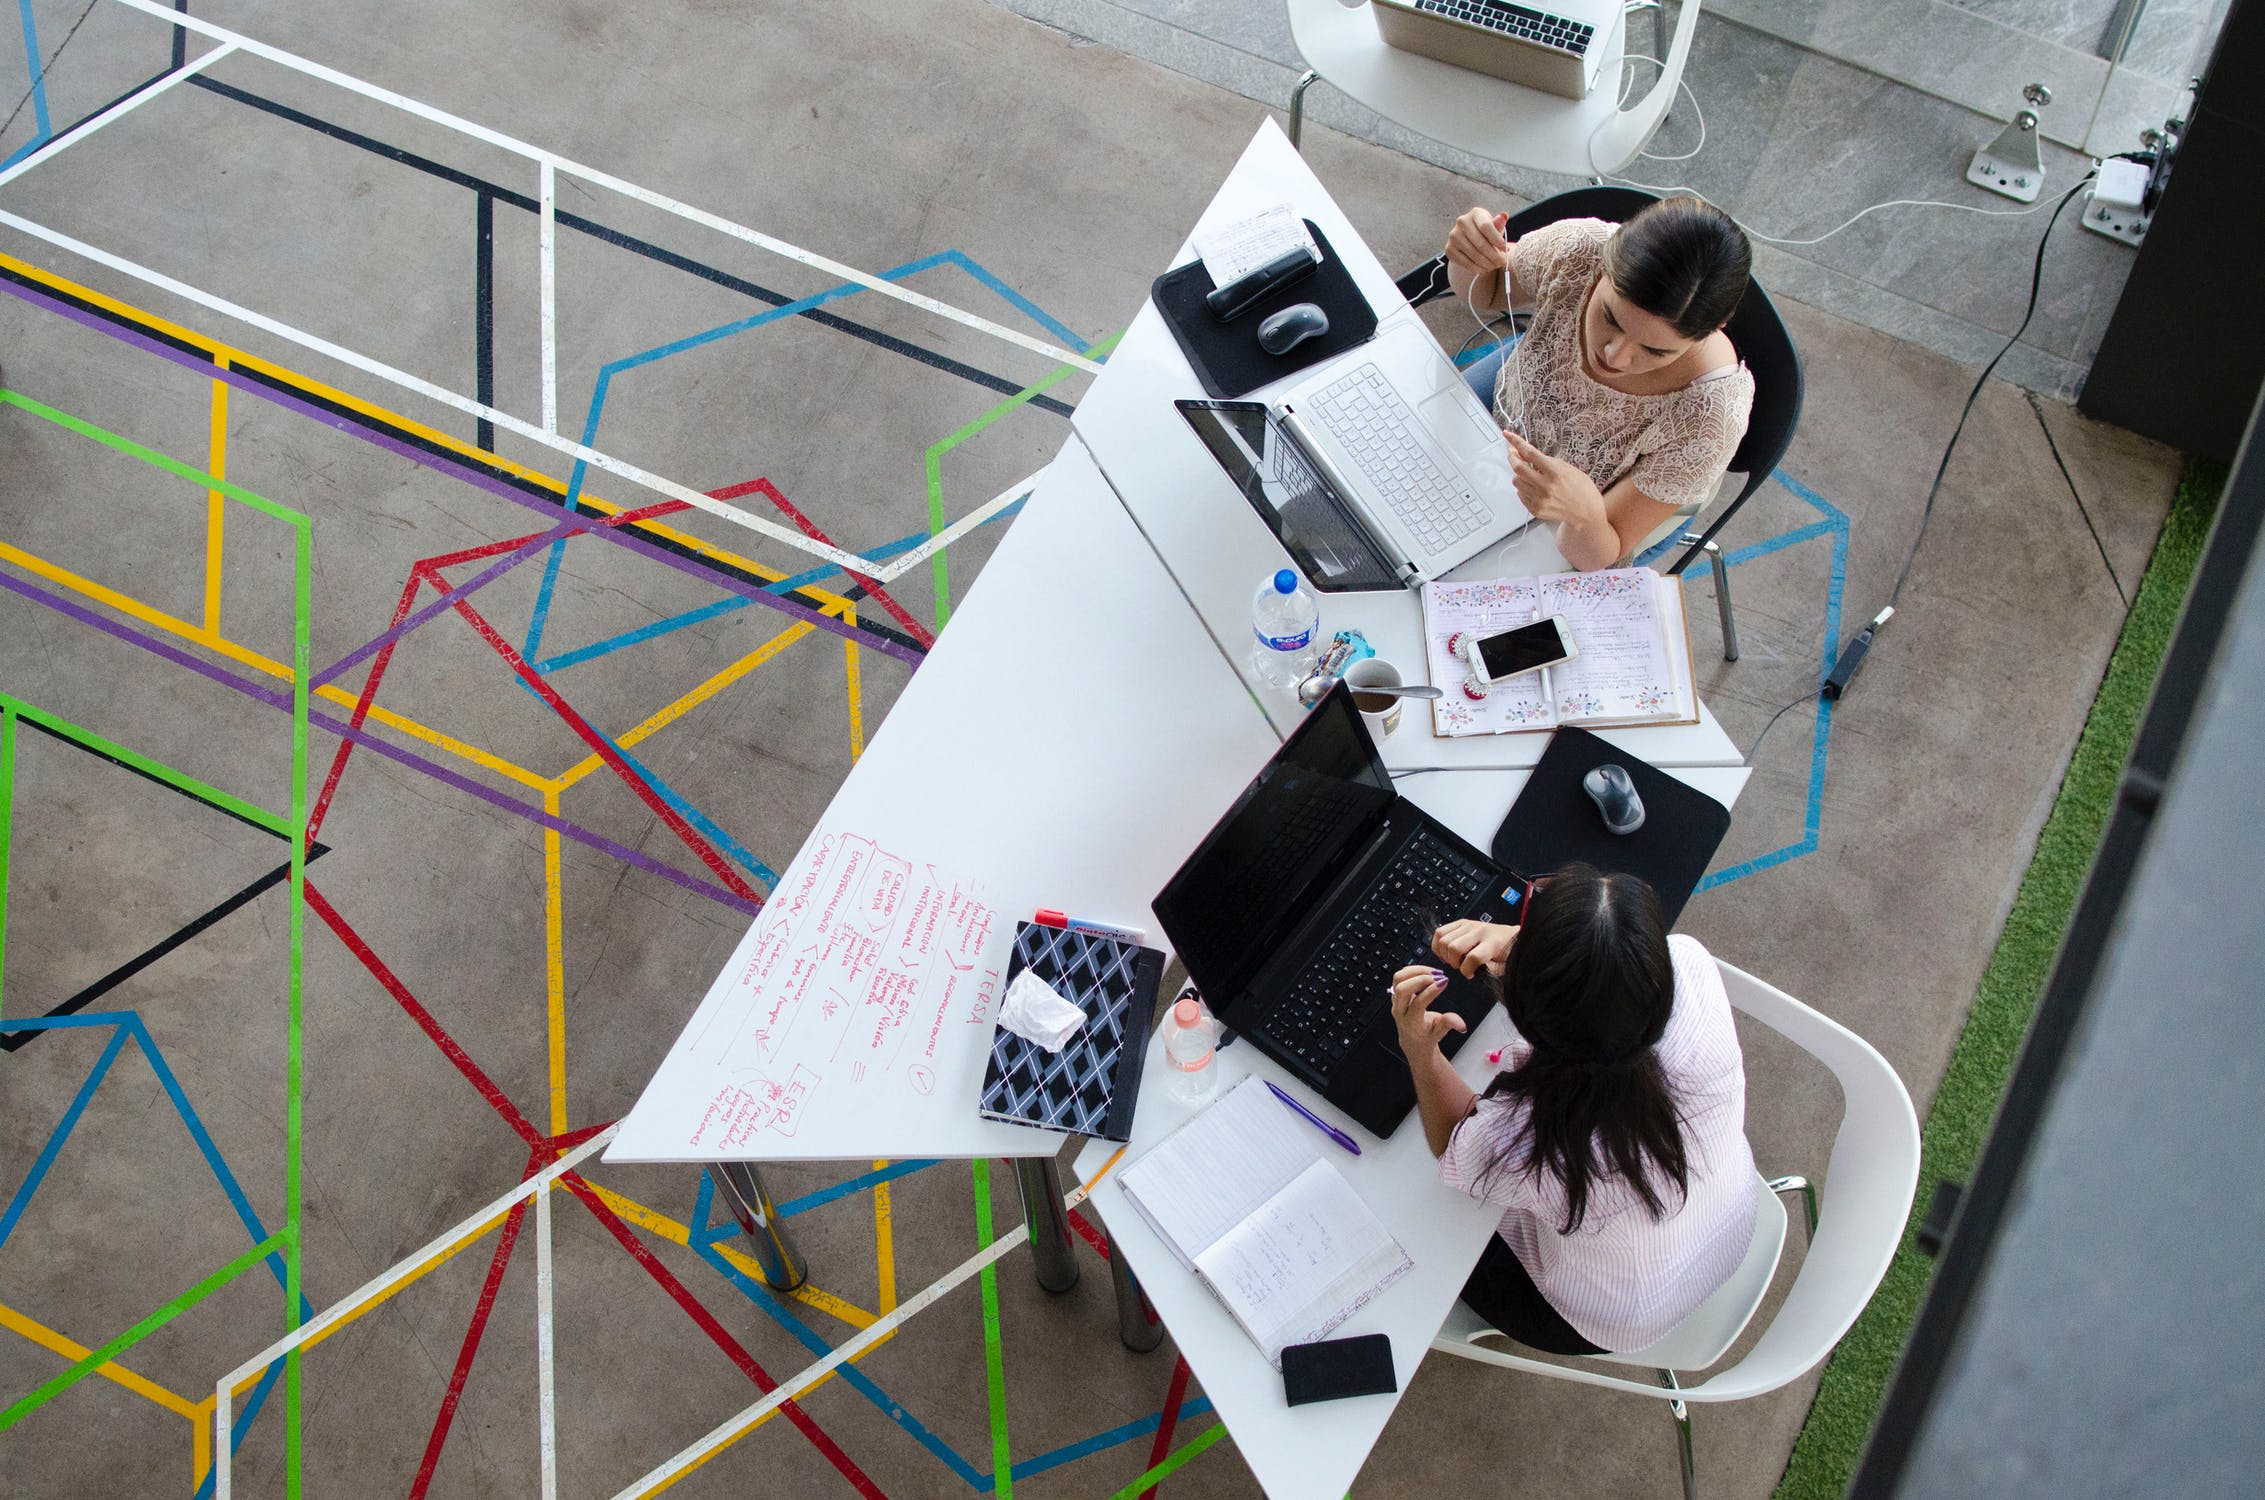 People working in an open space office